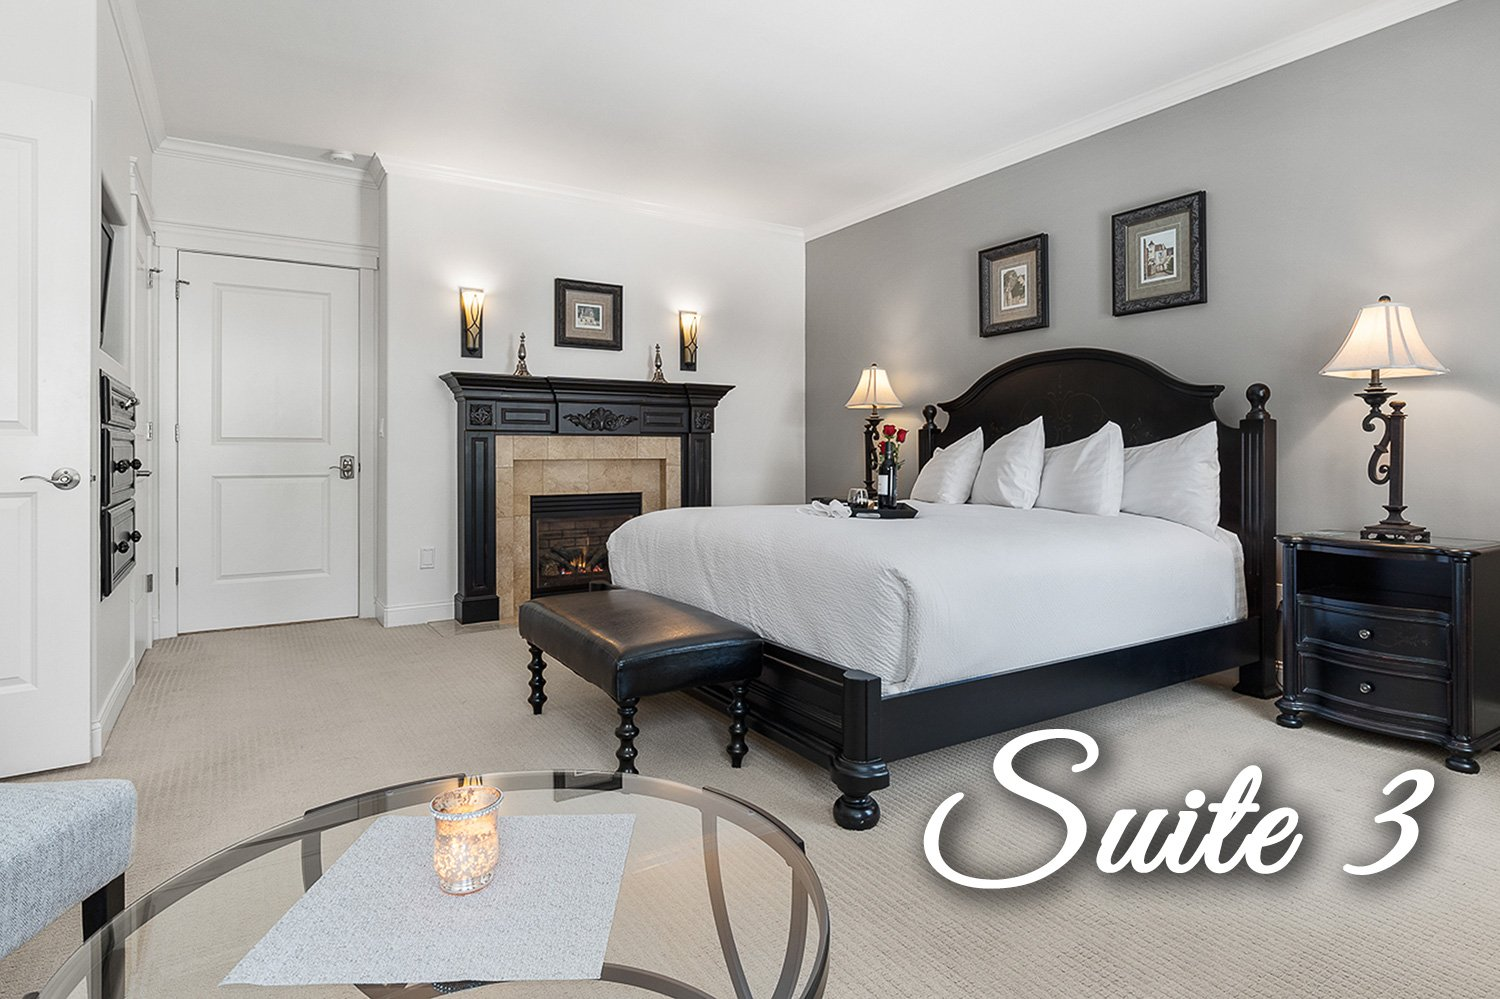 Suite 3 at Bed with chairs and fireplace